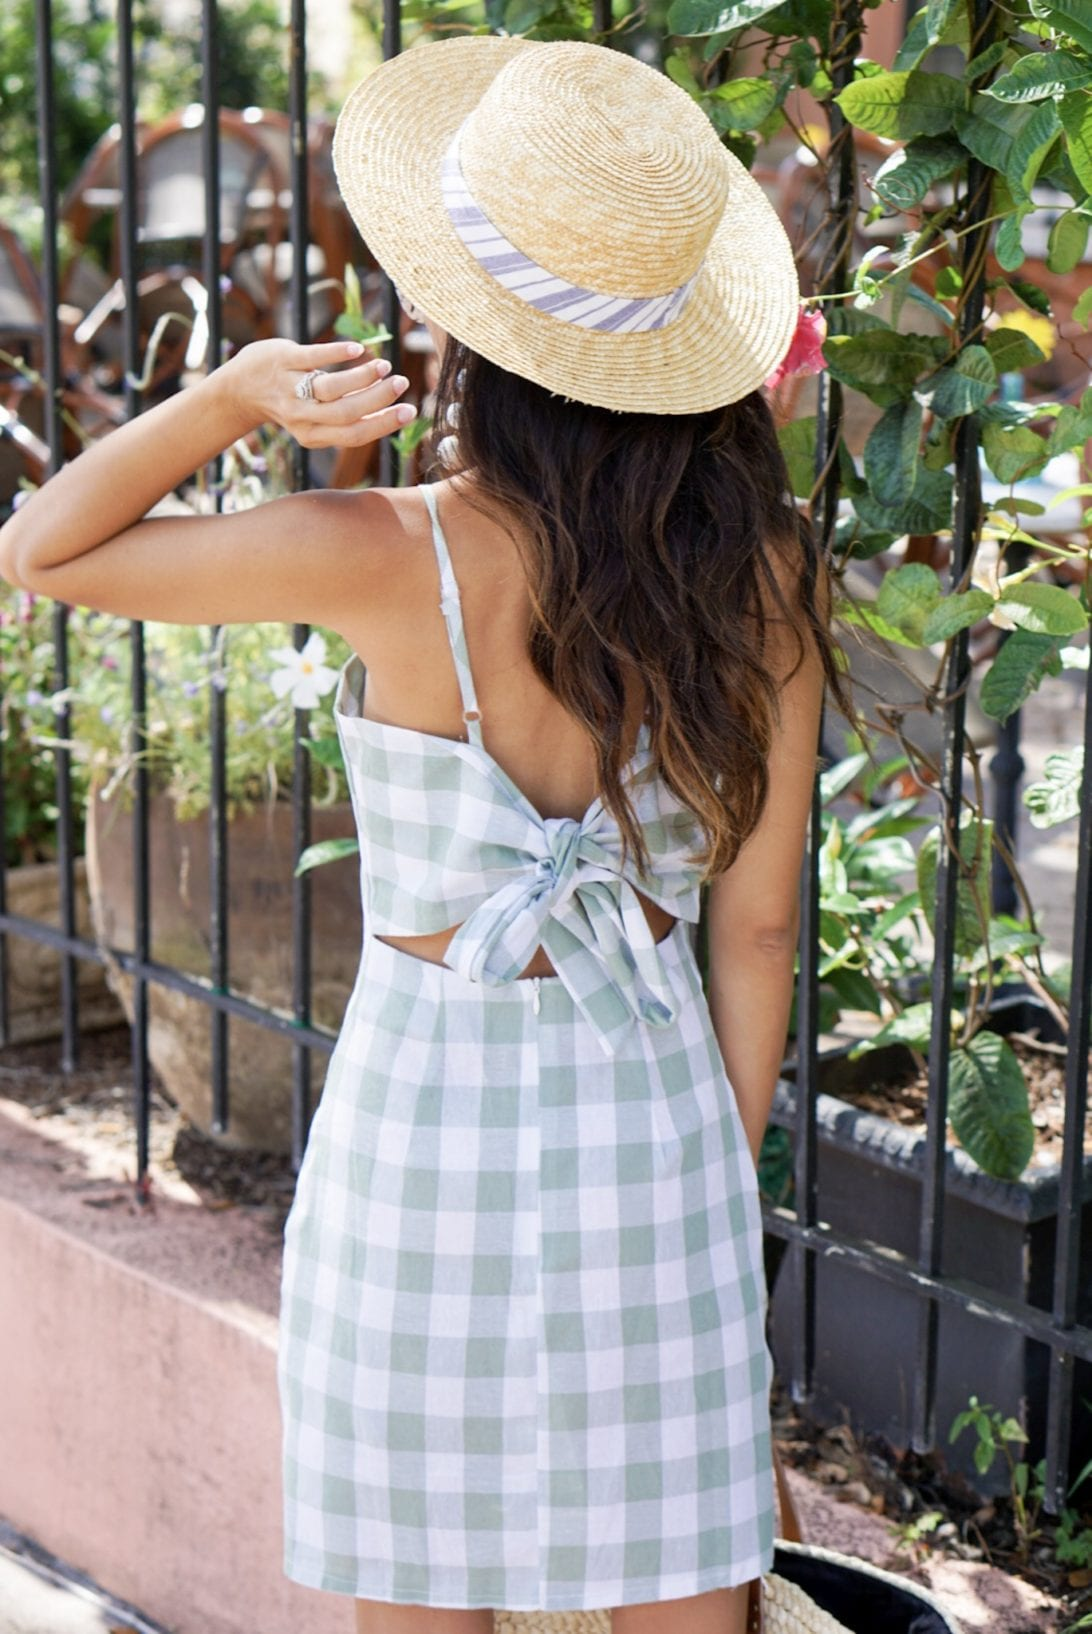 GREEN GINGHAM DRESS, SUMMER DRESS UNDER $50, SUMMER STYLE. BOAT HAT, BAUBLE BALL EARRINGS, FLORIDA, VACATION OUTFIT, VACATIONS STYLE